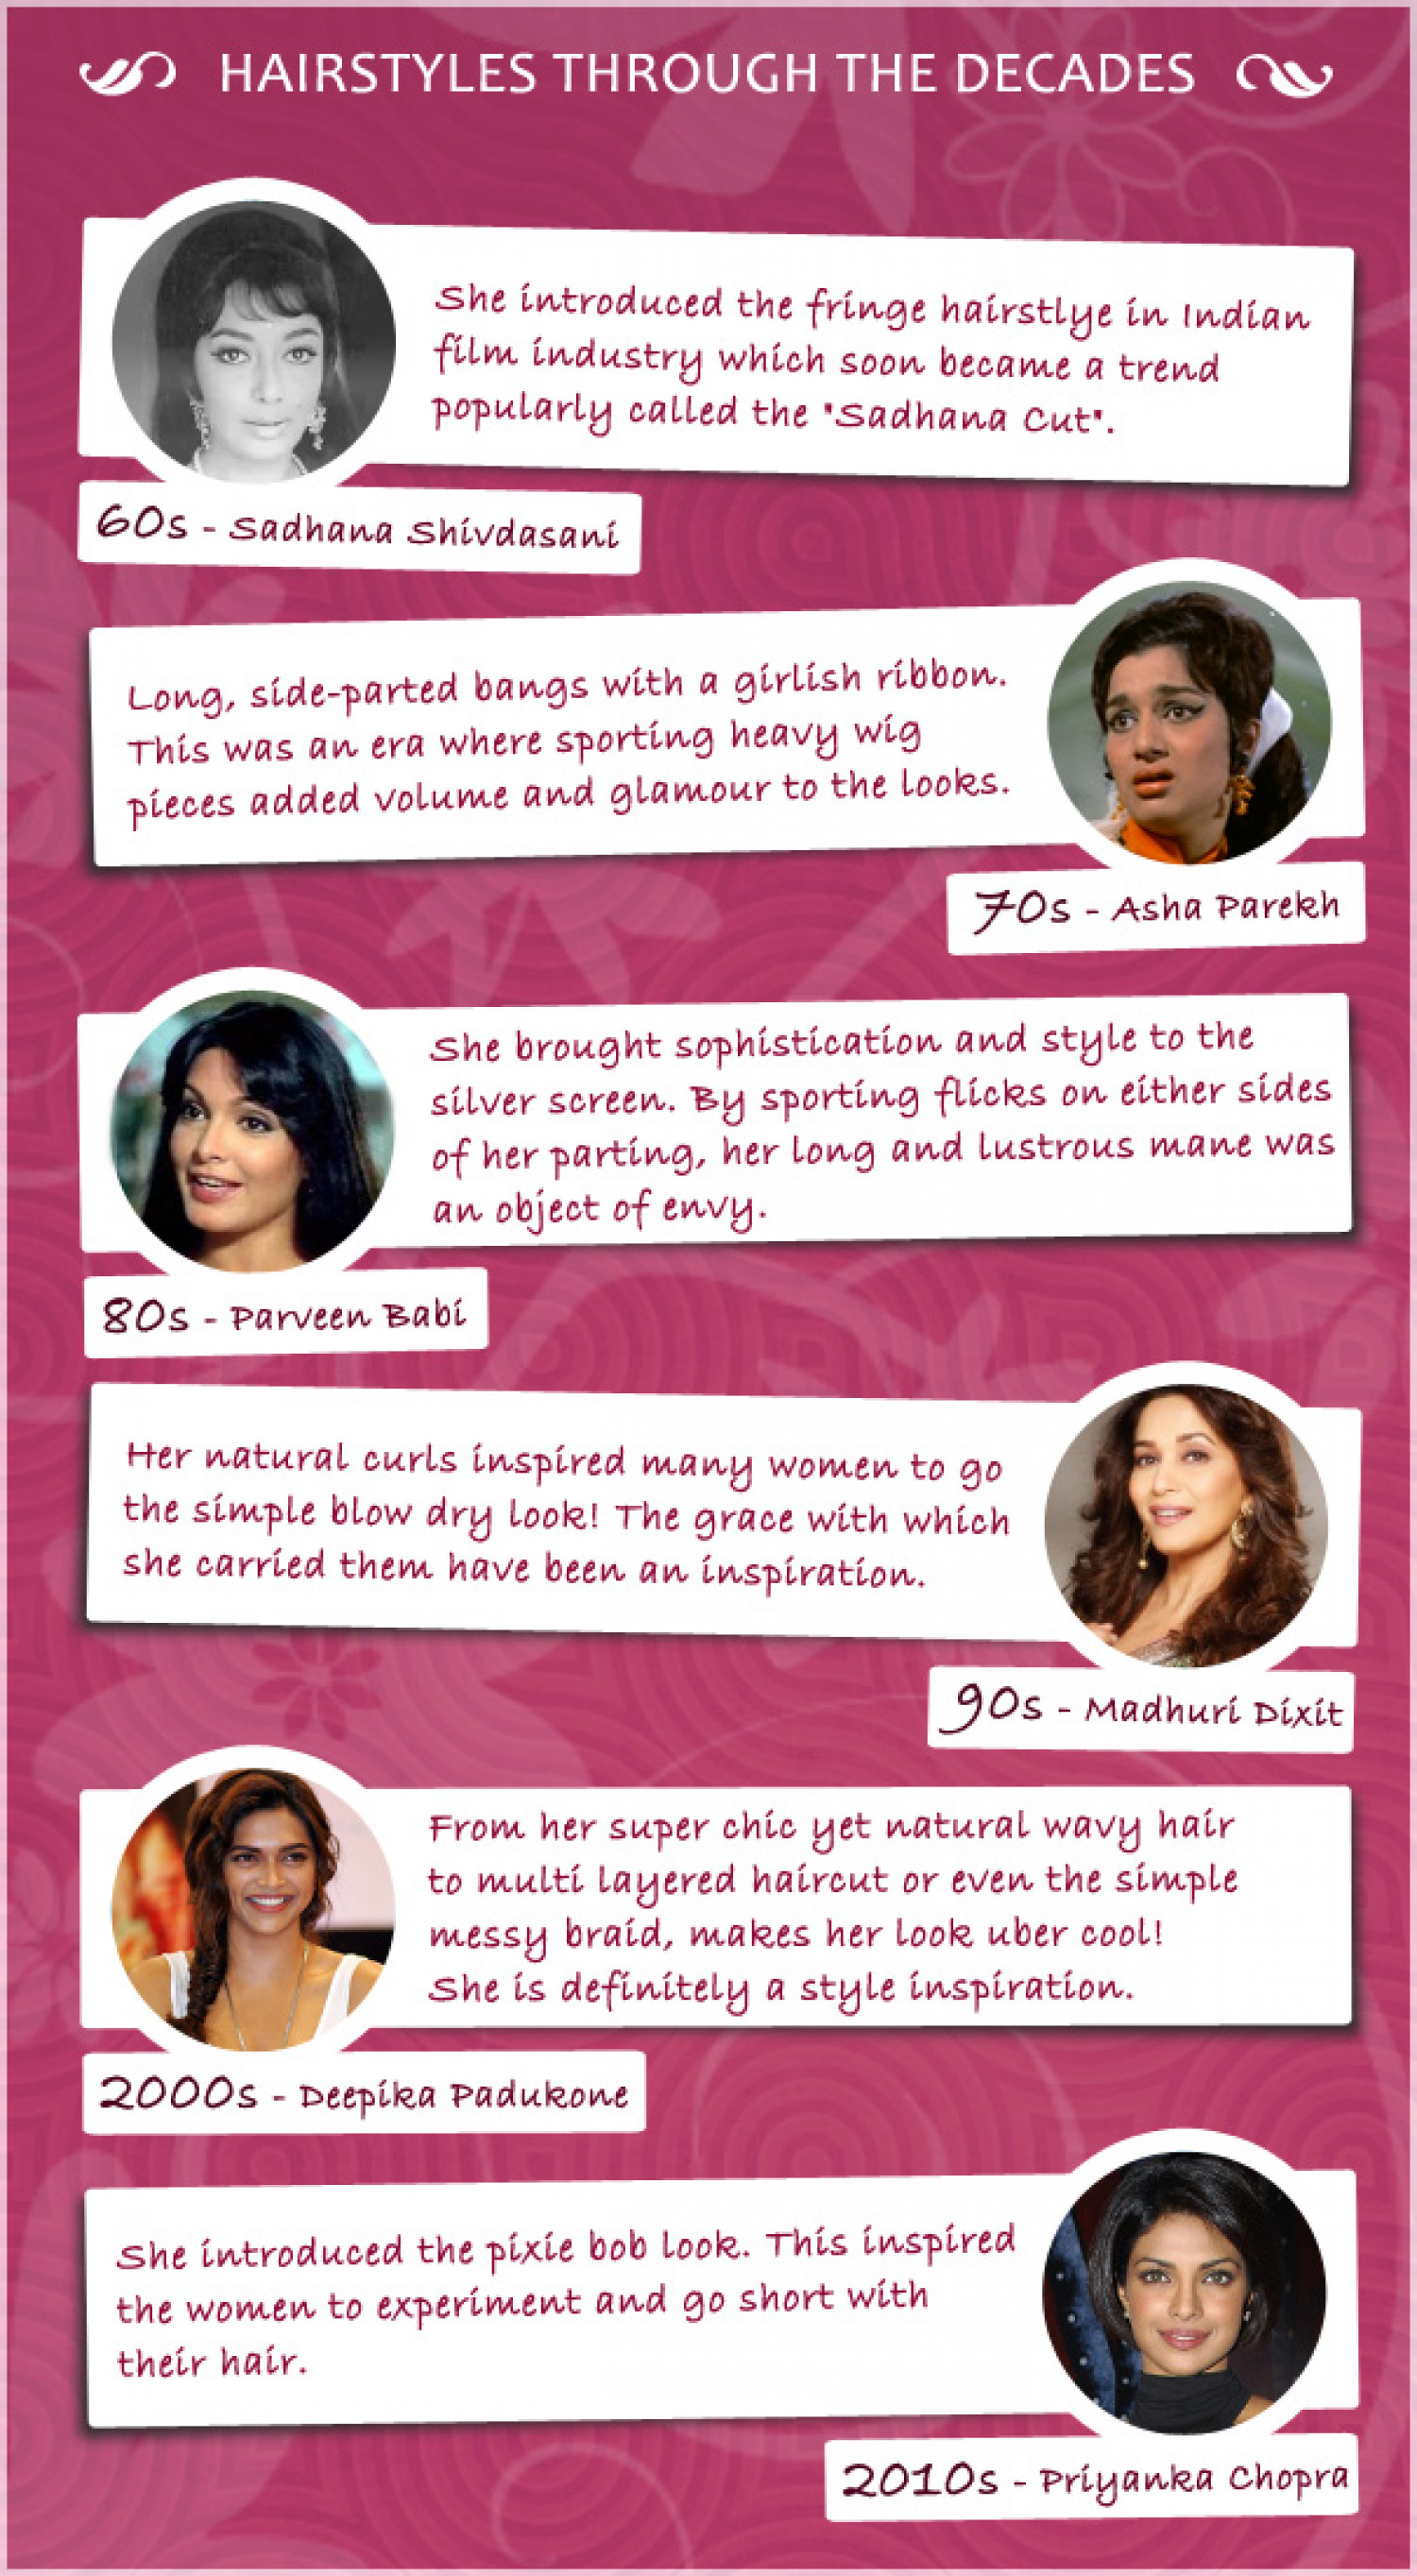 All About Hair - Celebrity Hairstyles through the decades Infographic